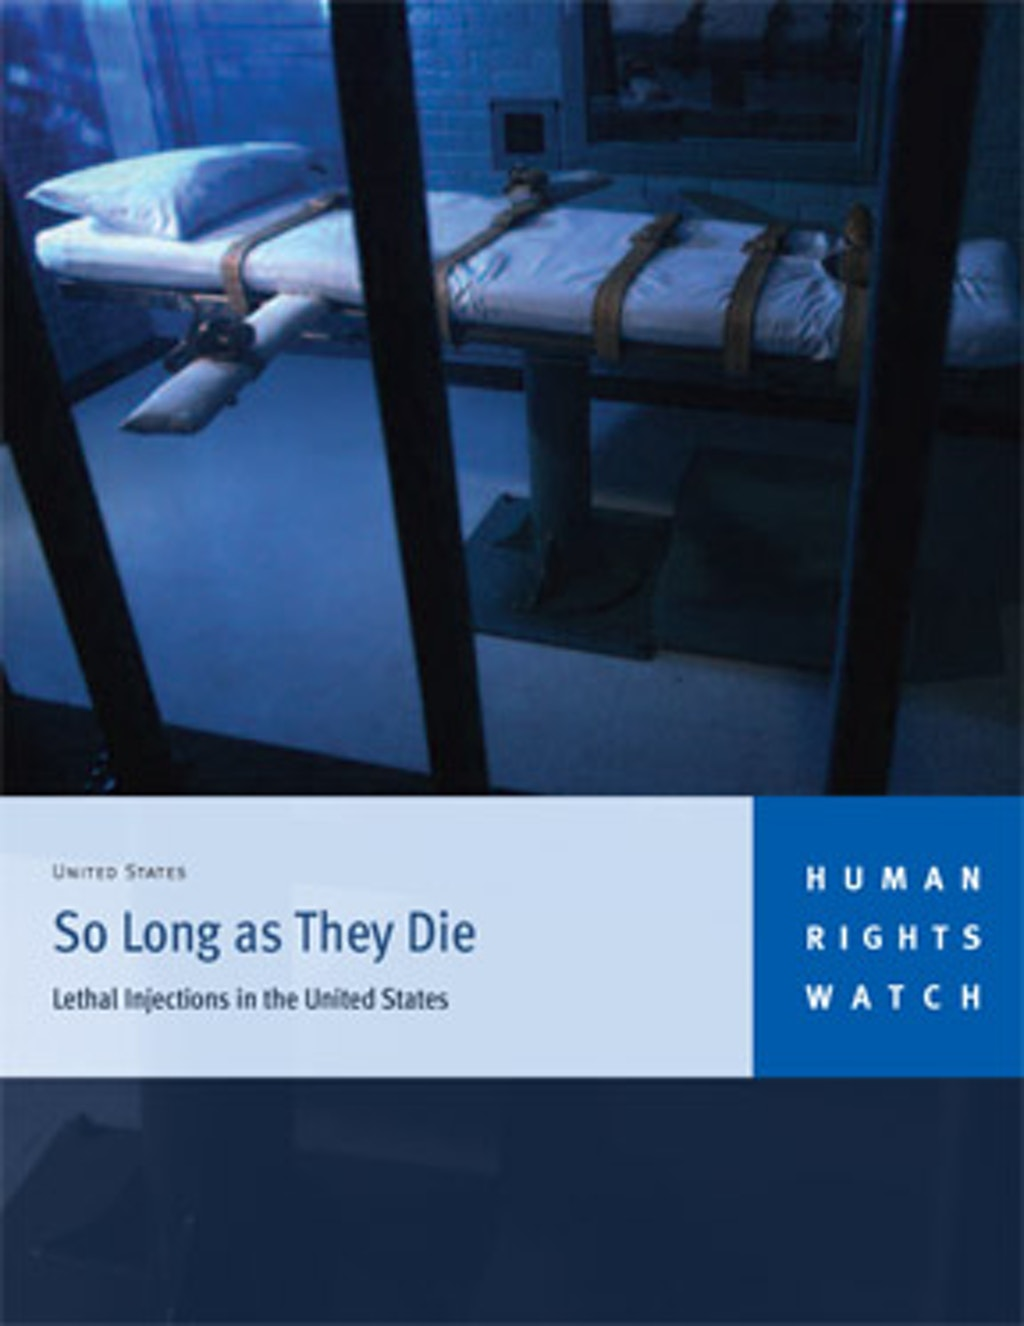 Human Rights Watch Report on Lethal Injection